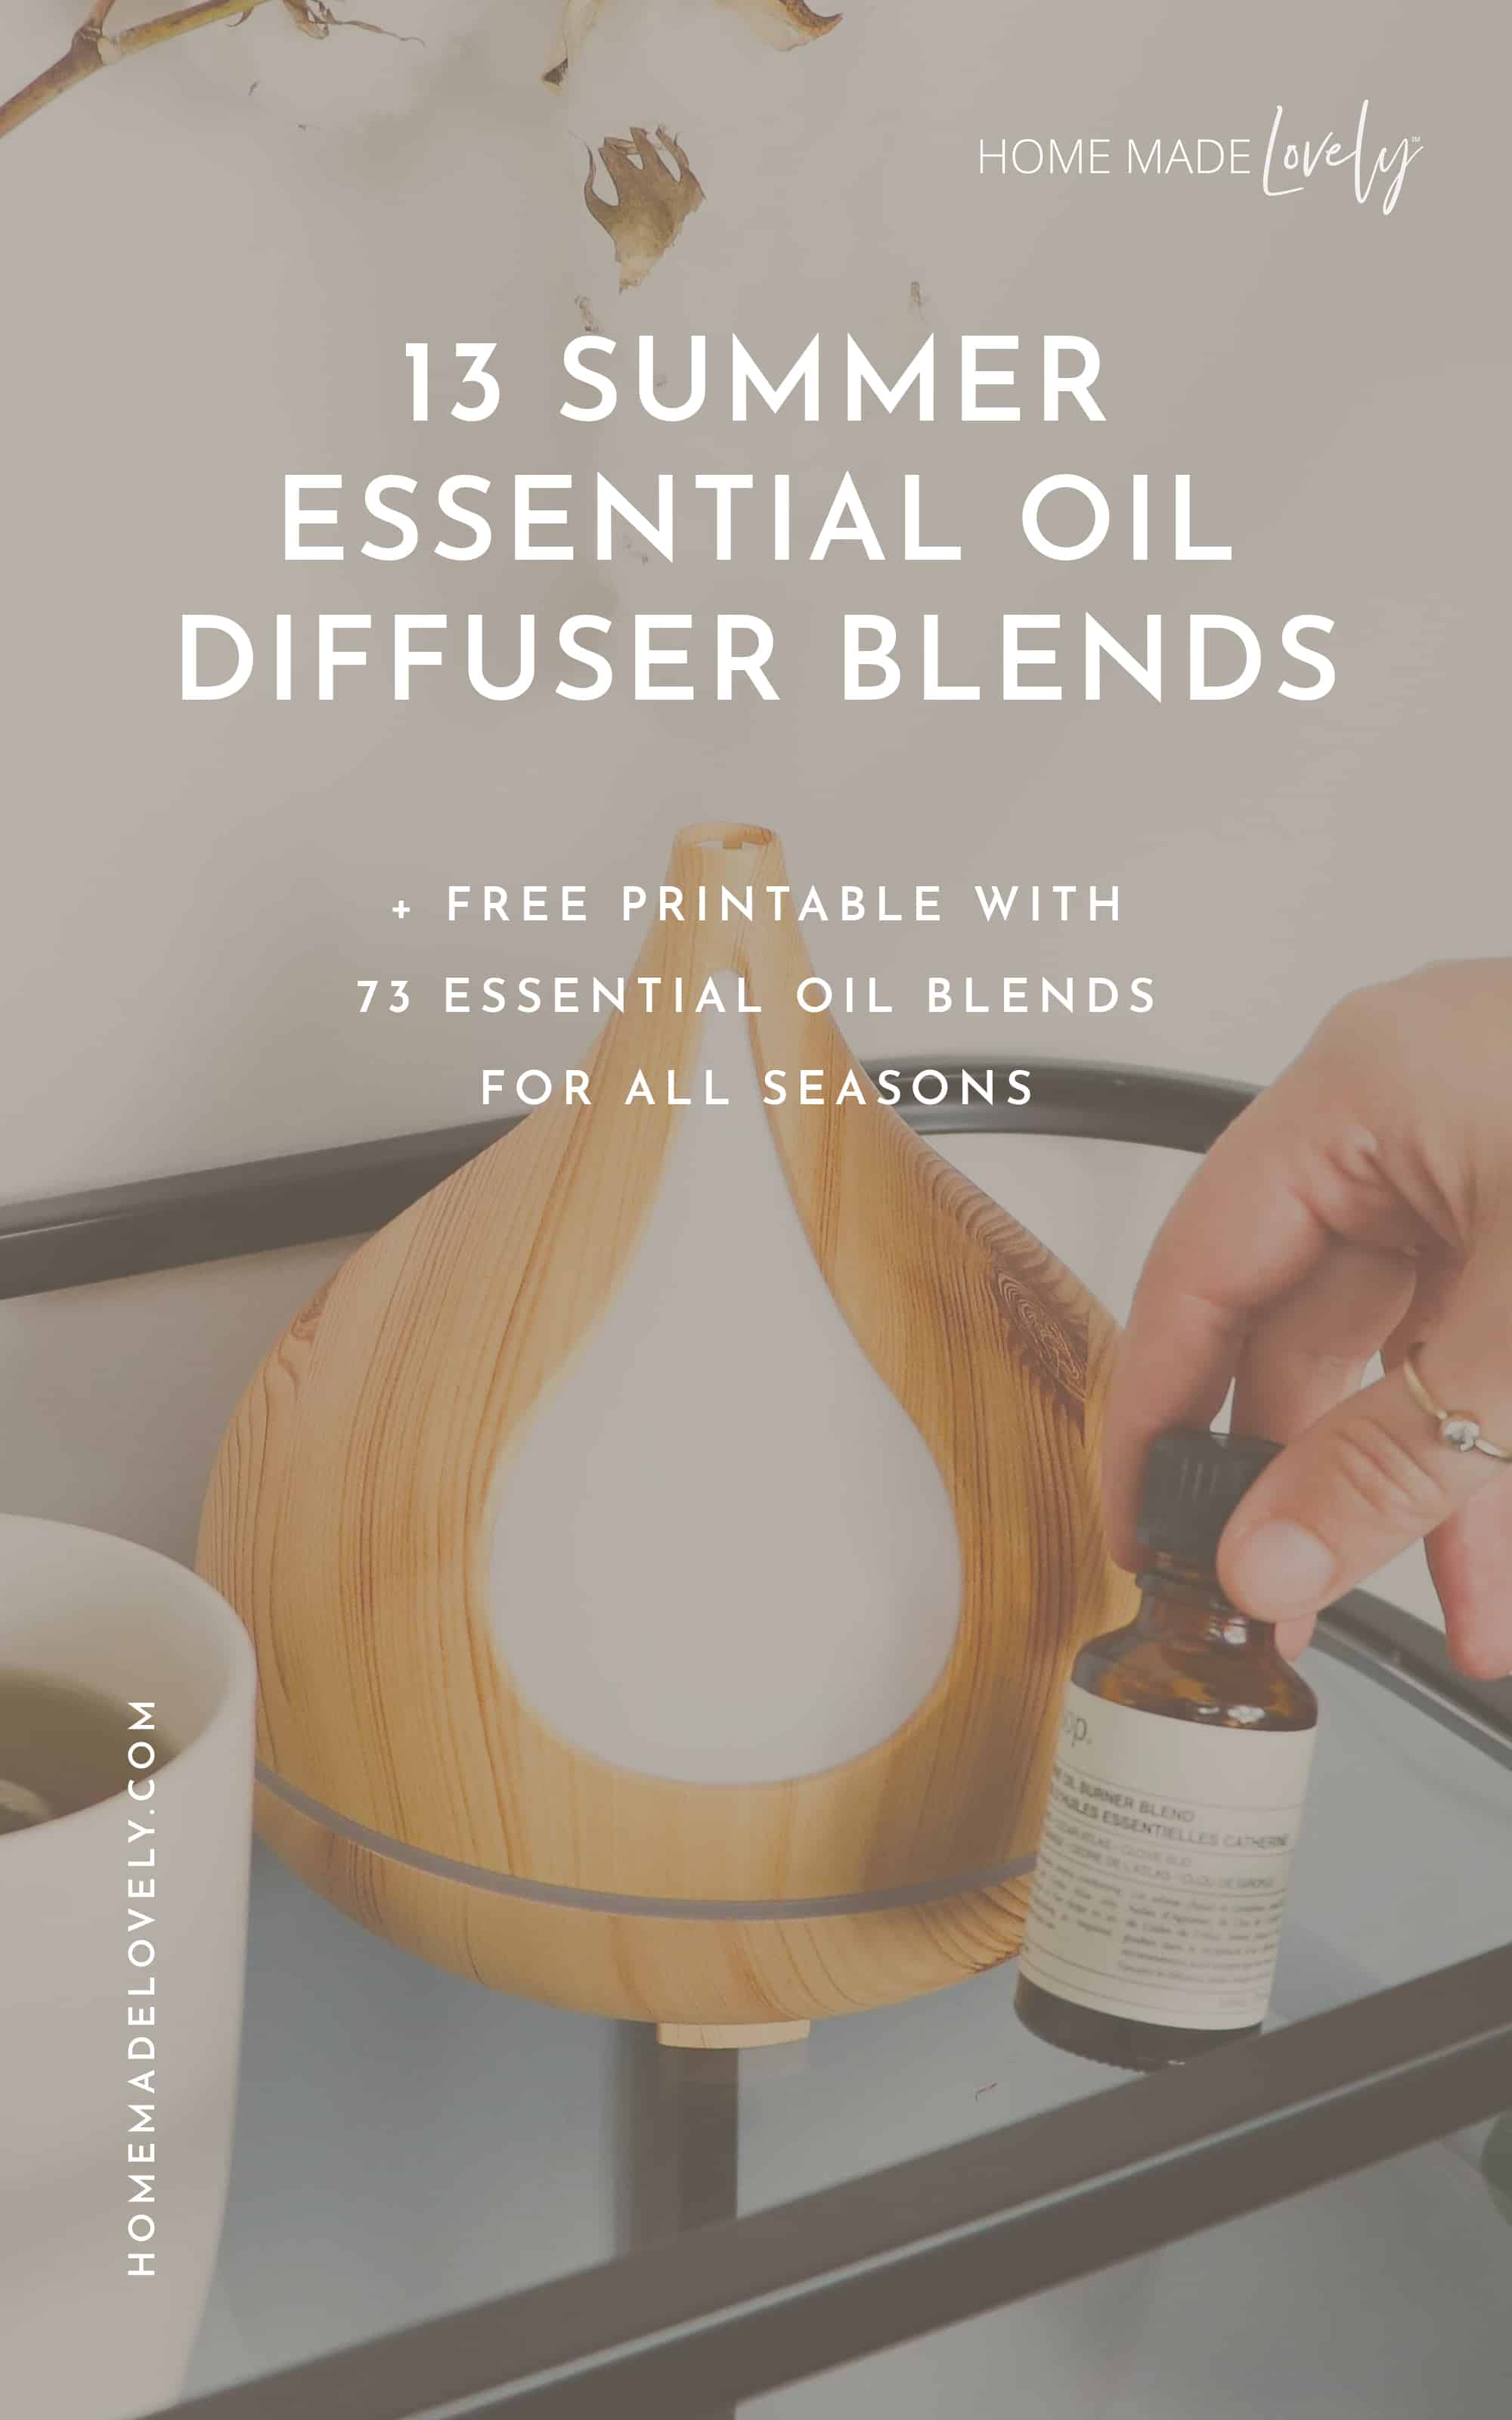 essential oil diffuser on cart with text overlay that says 13 summer essential oil diffuser blends